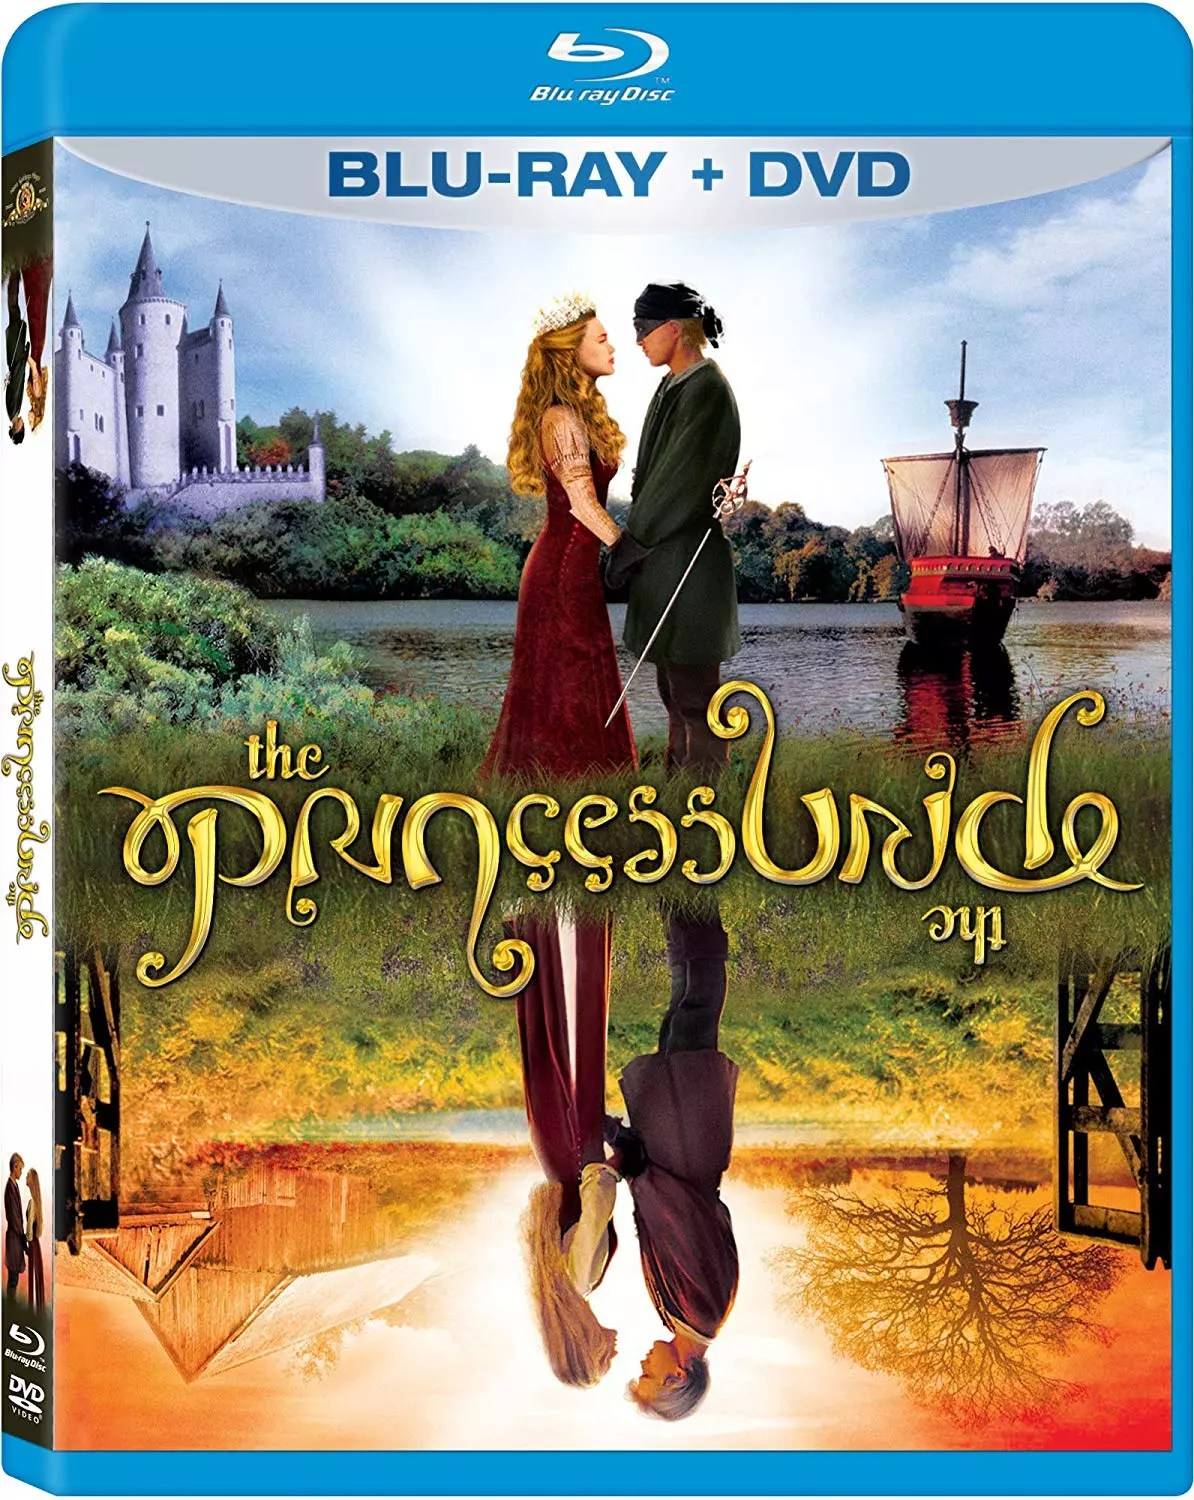 The Princess Bride DVD   visit beautifulbooks.info for more...